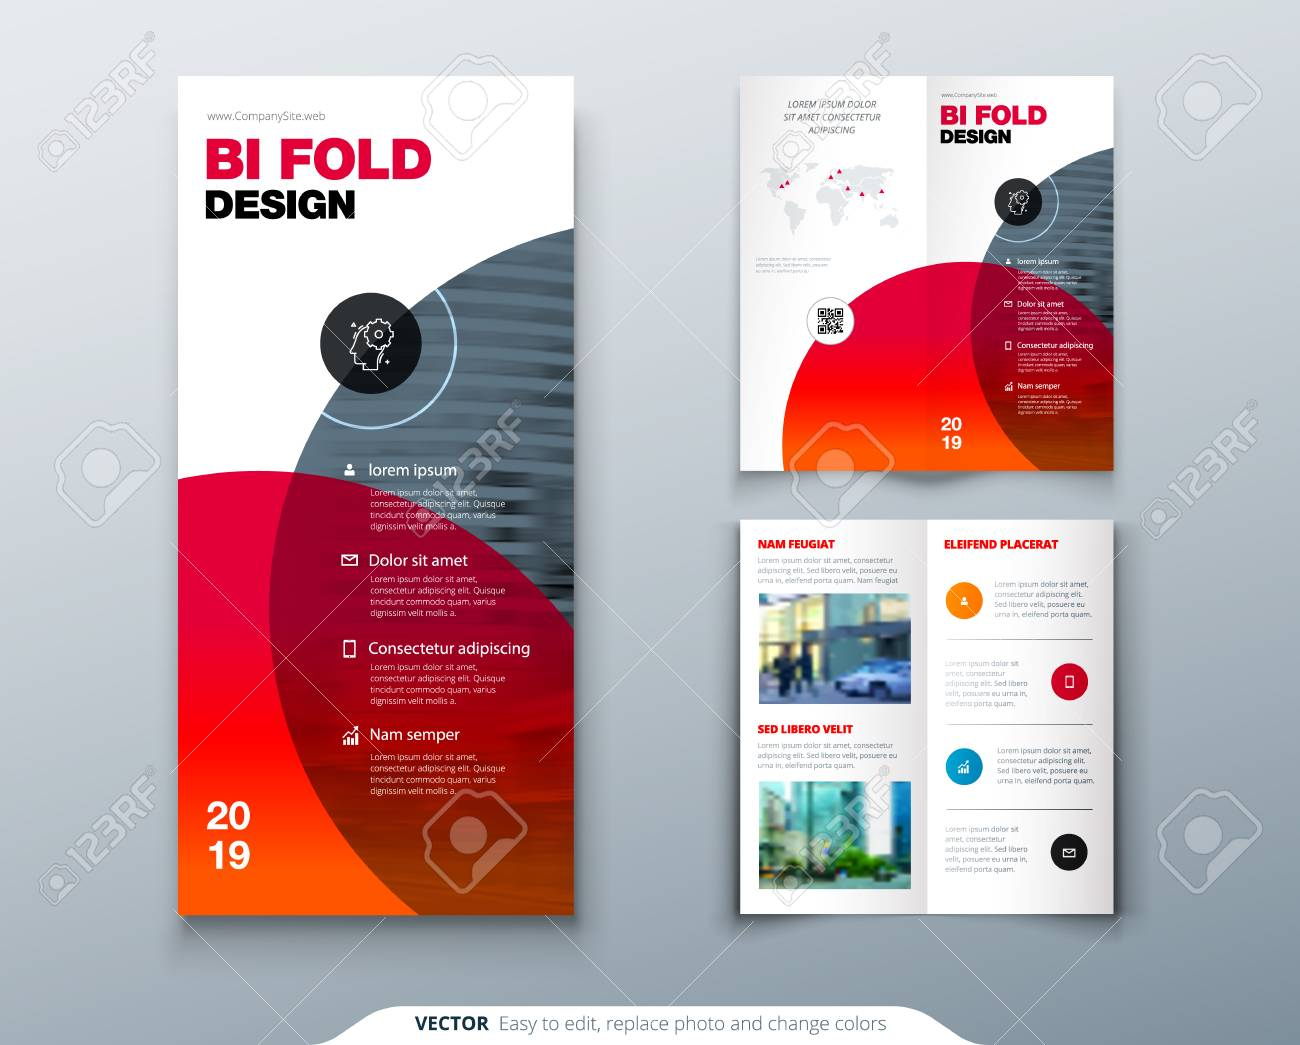 tri fold brochure design business template for tri fold flyer layout with modern circle